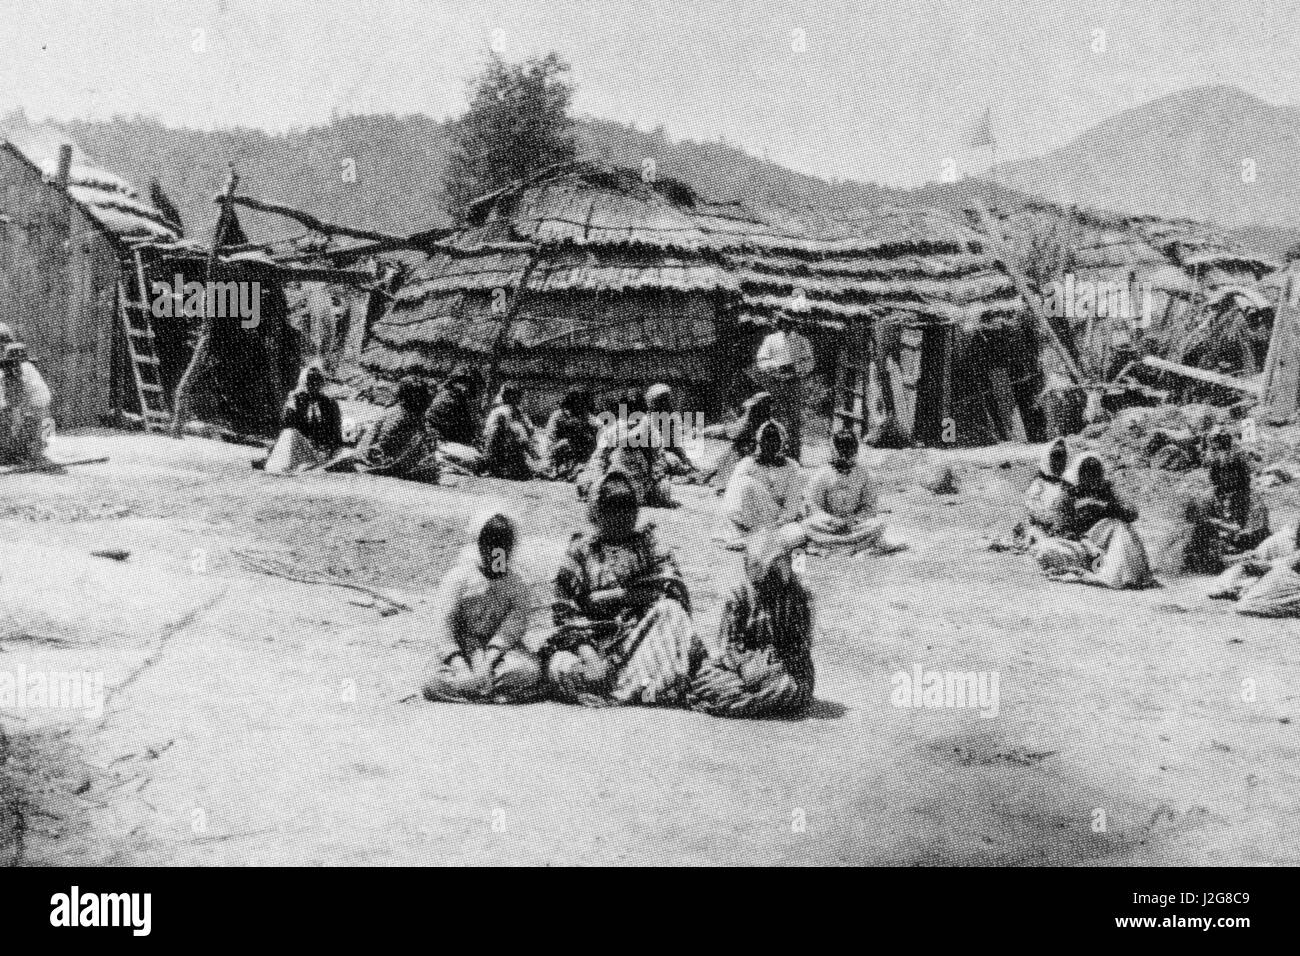 1875 black and white historic photograph of a traditional Pomo Indian  Village, California